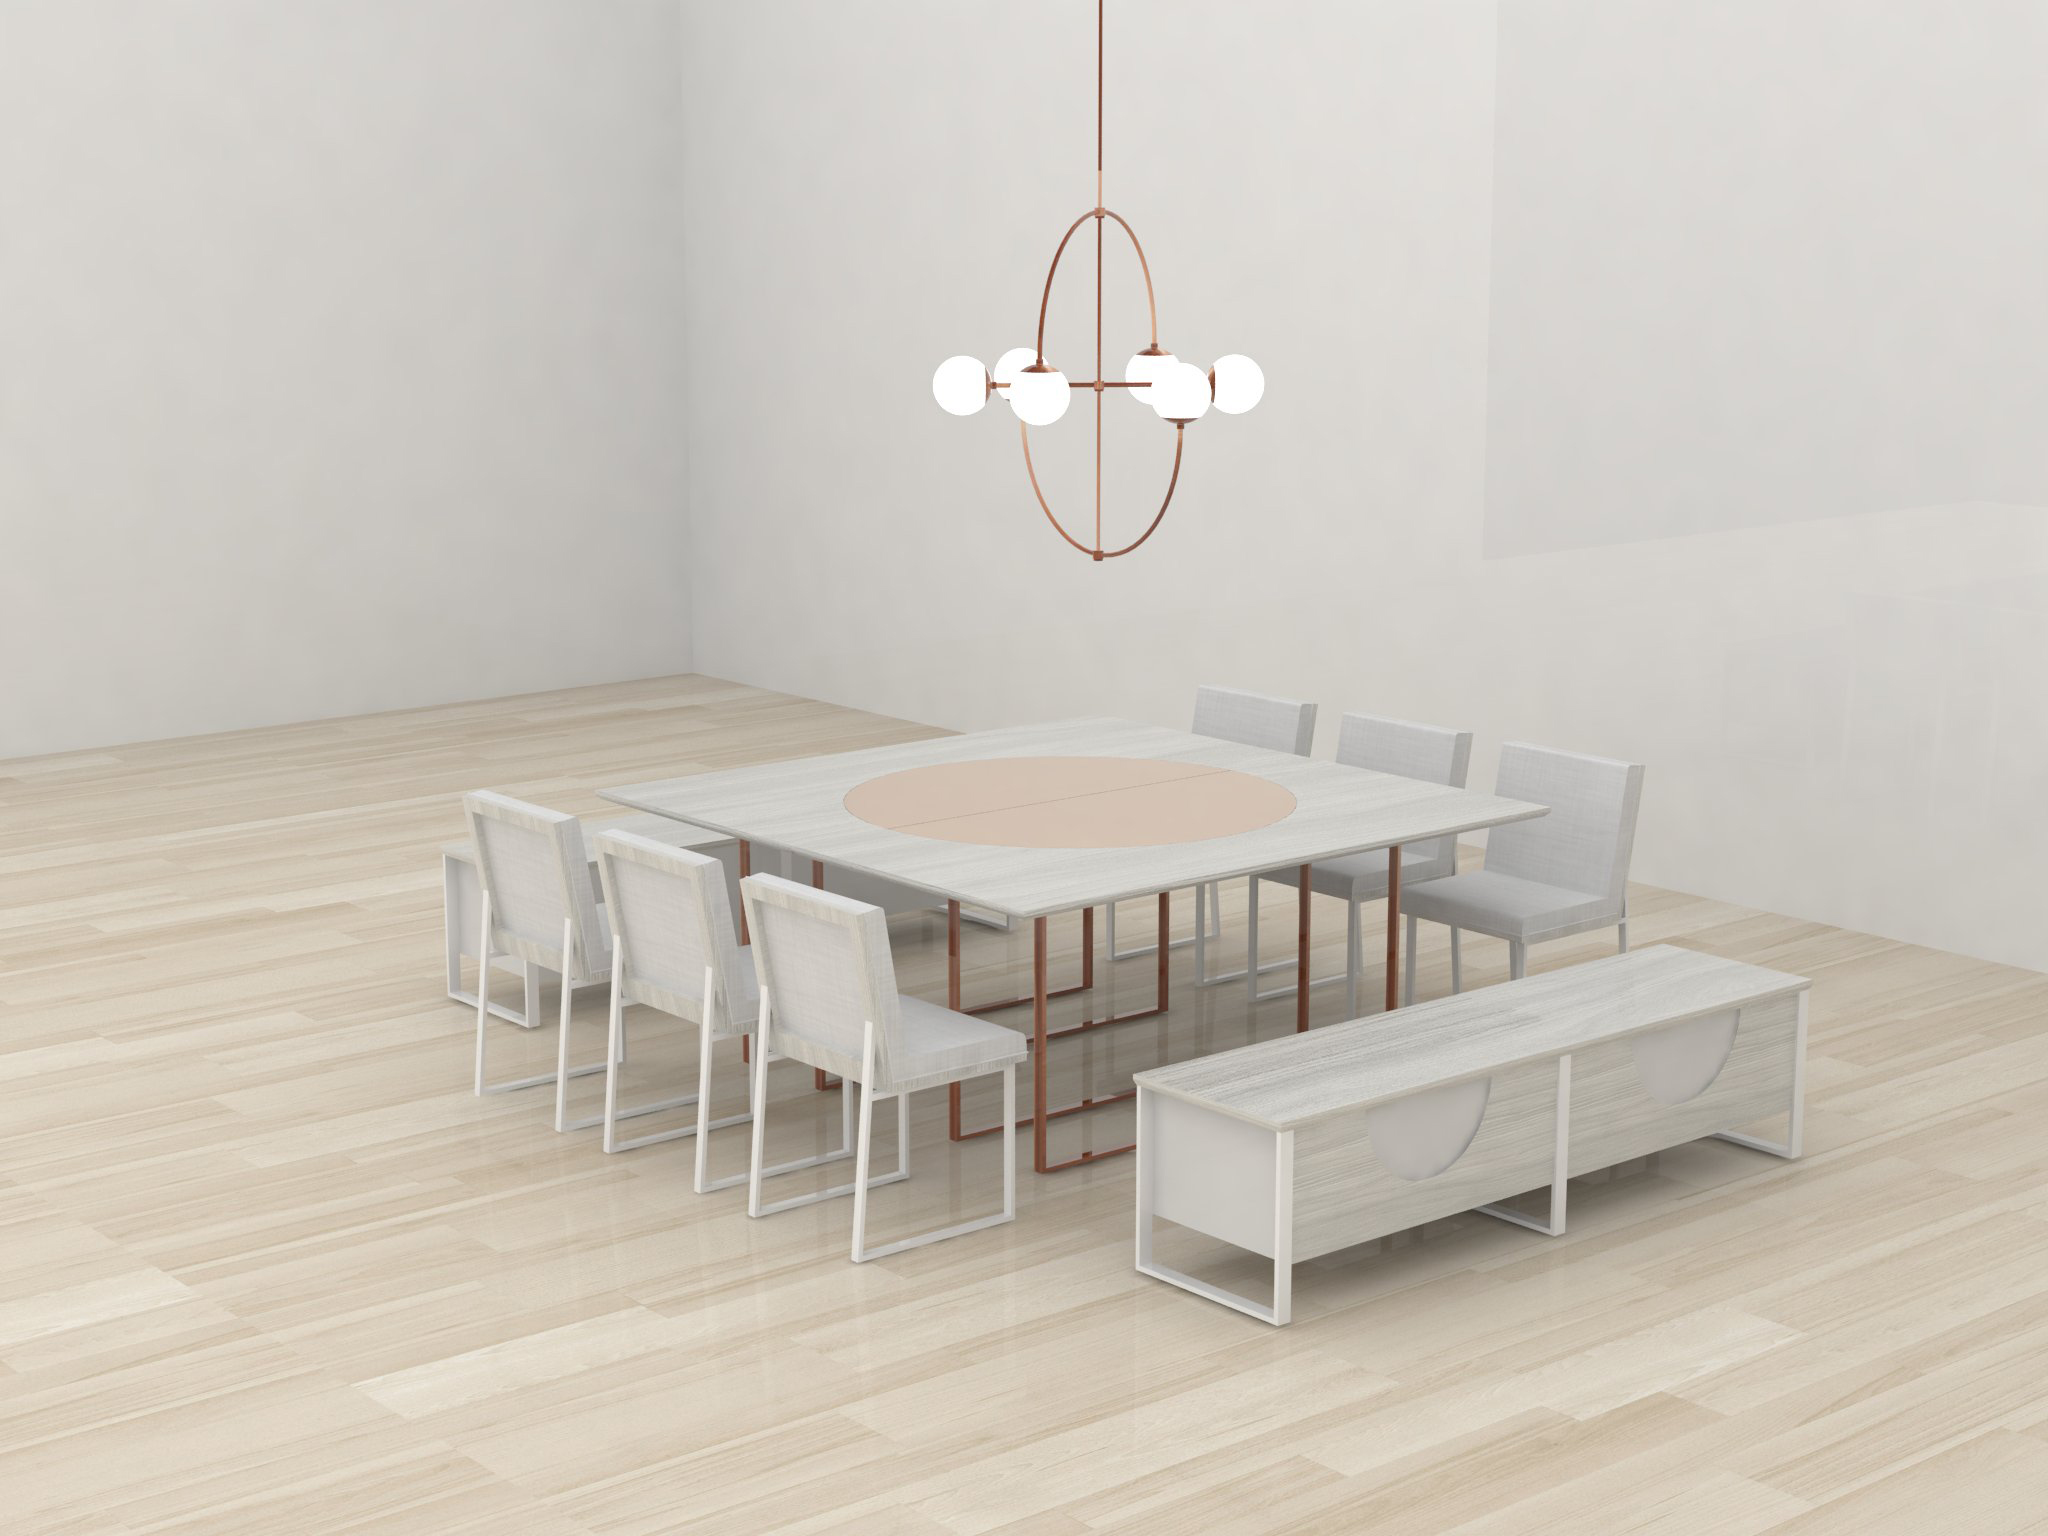 Custom furniture proposals for a high end retail space